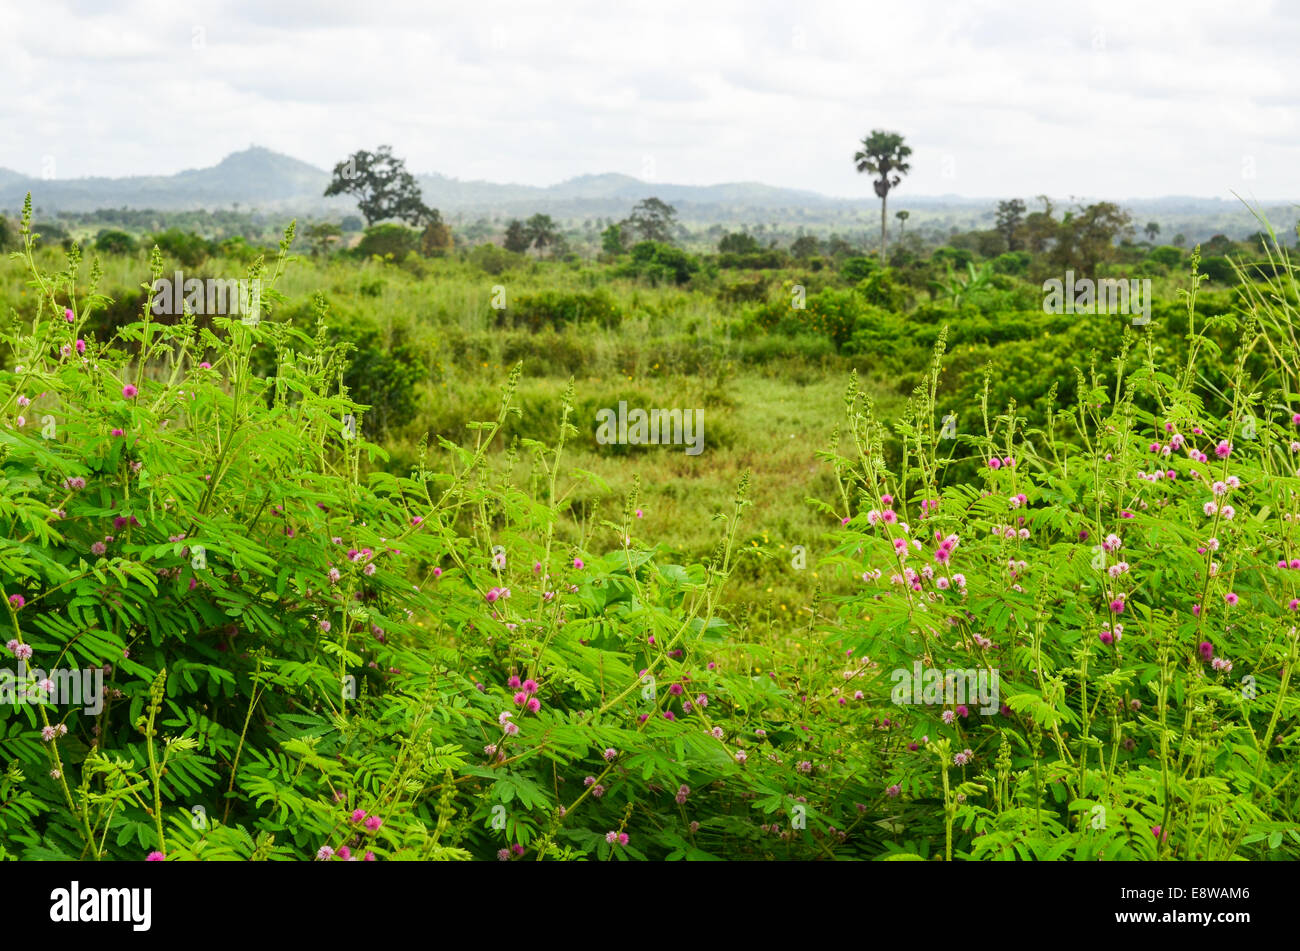 Bush and plants in Nigeria, Edo State - Stock Image